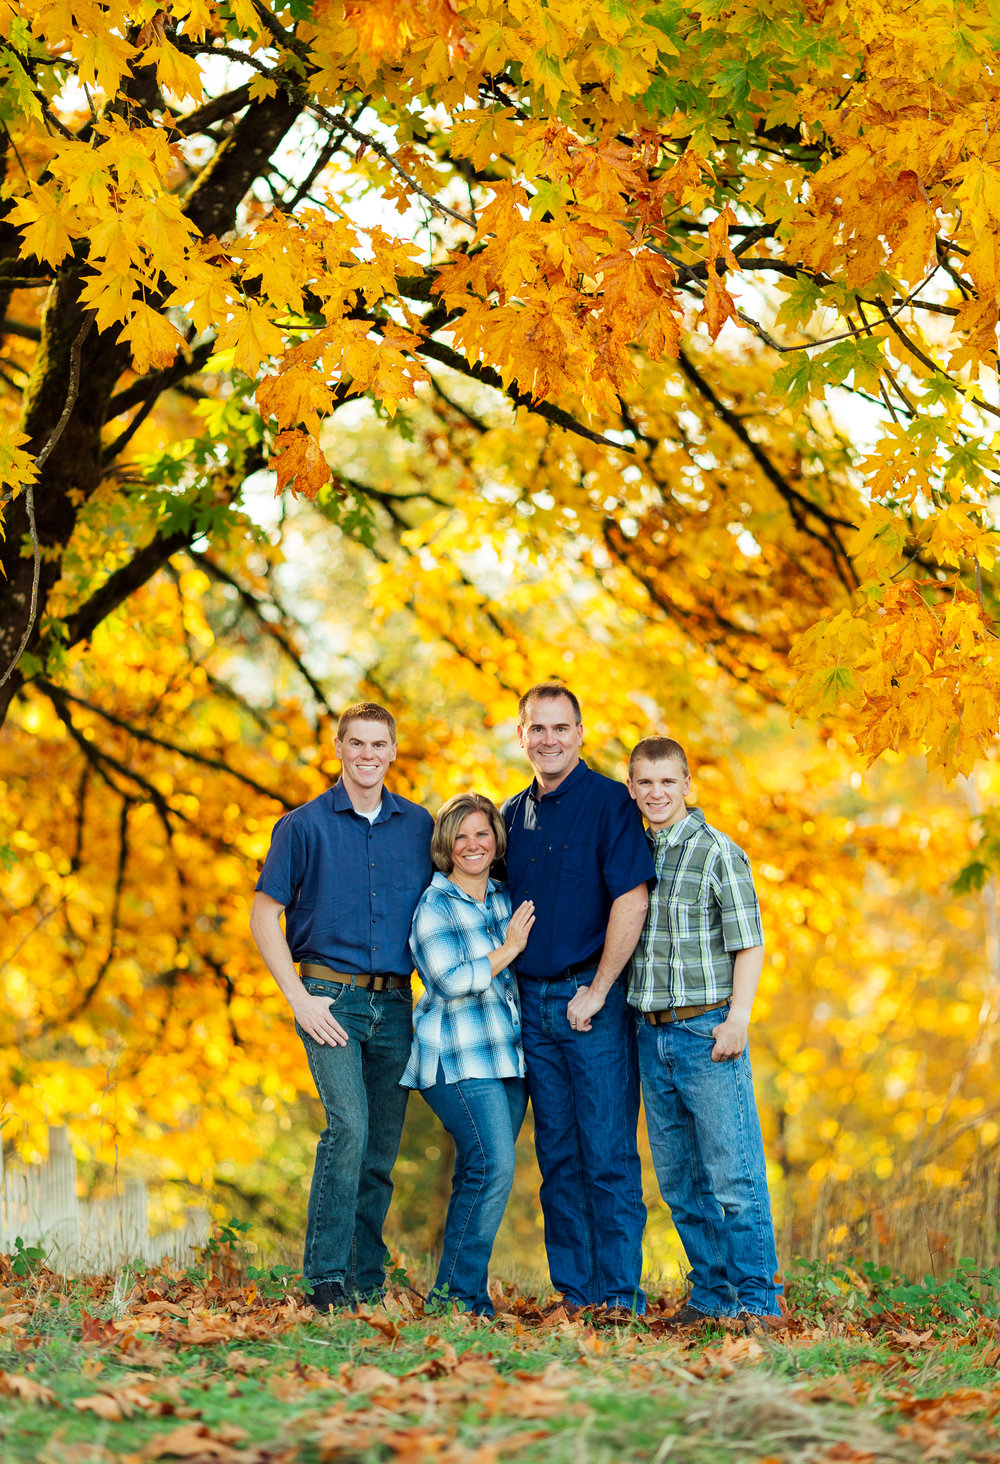 ariellanoellephotography-family-portraits-fall-mini-session-duvall-monroe-washington-seattle-redmond-woodinville-sammamish-area-1-19.jpg